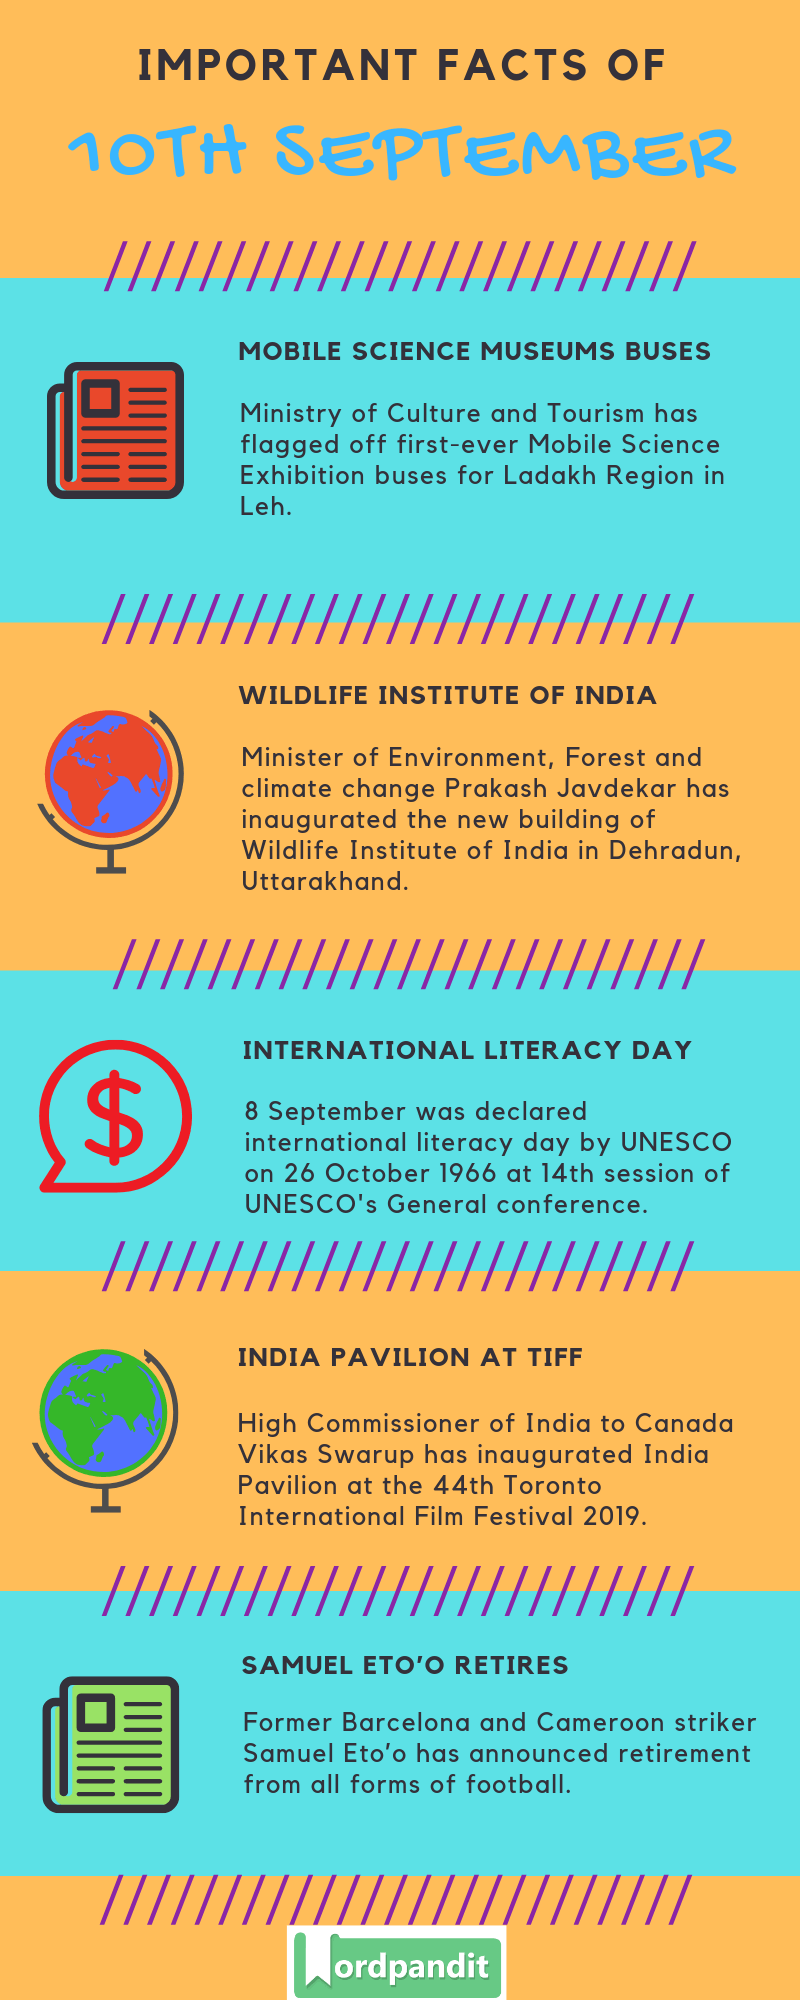 Daily Current Affairs 10 September 2019 Current Affairs Quiz 10 September 2019 Current Affairs Infographic